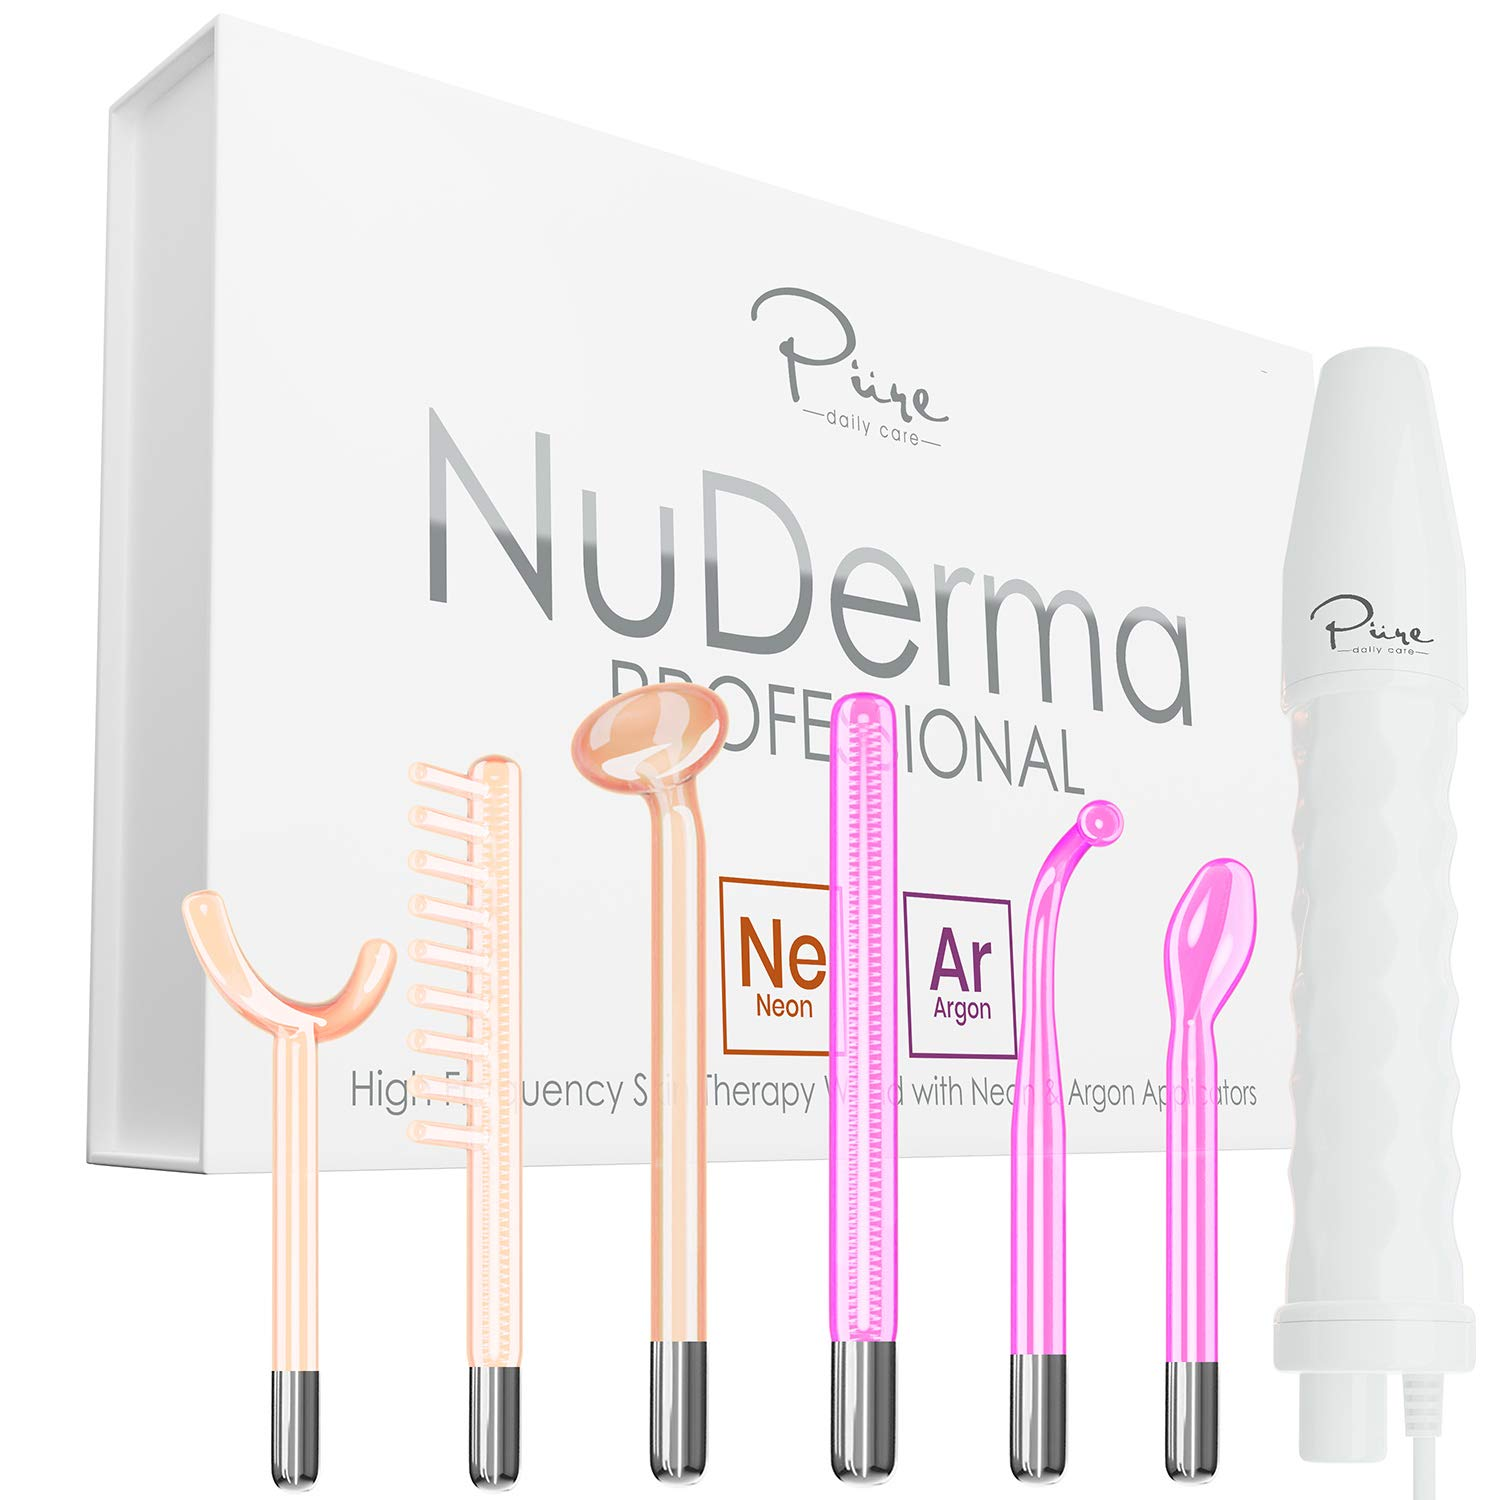 NuDerma Professional Skin Therapy Wand - Portable High Frequency Skin Therapy Machine with 6 Neon & Argon Wands - Blemish Control & Spot Treatment - Skin Tightening - Wrinkle Reducing – Anti Aging